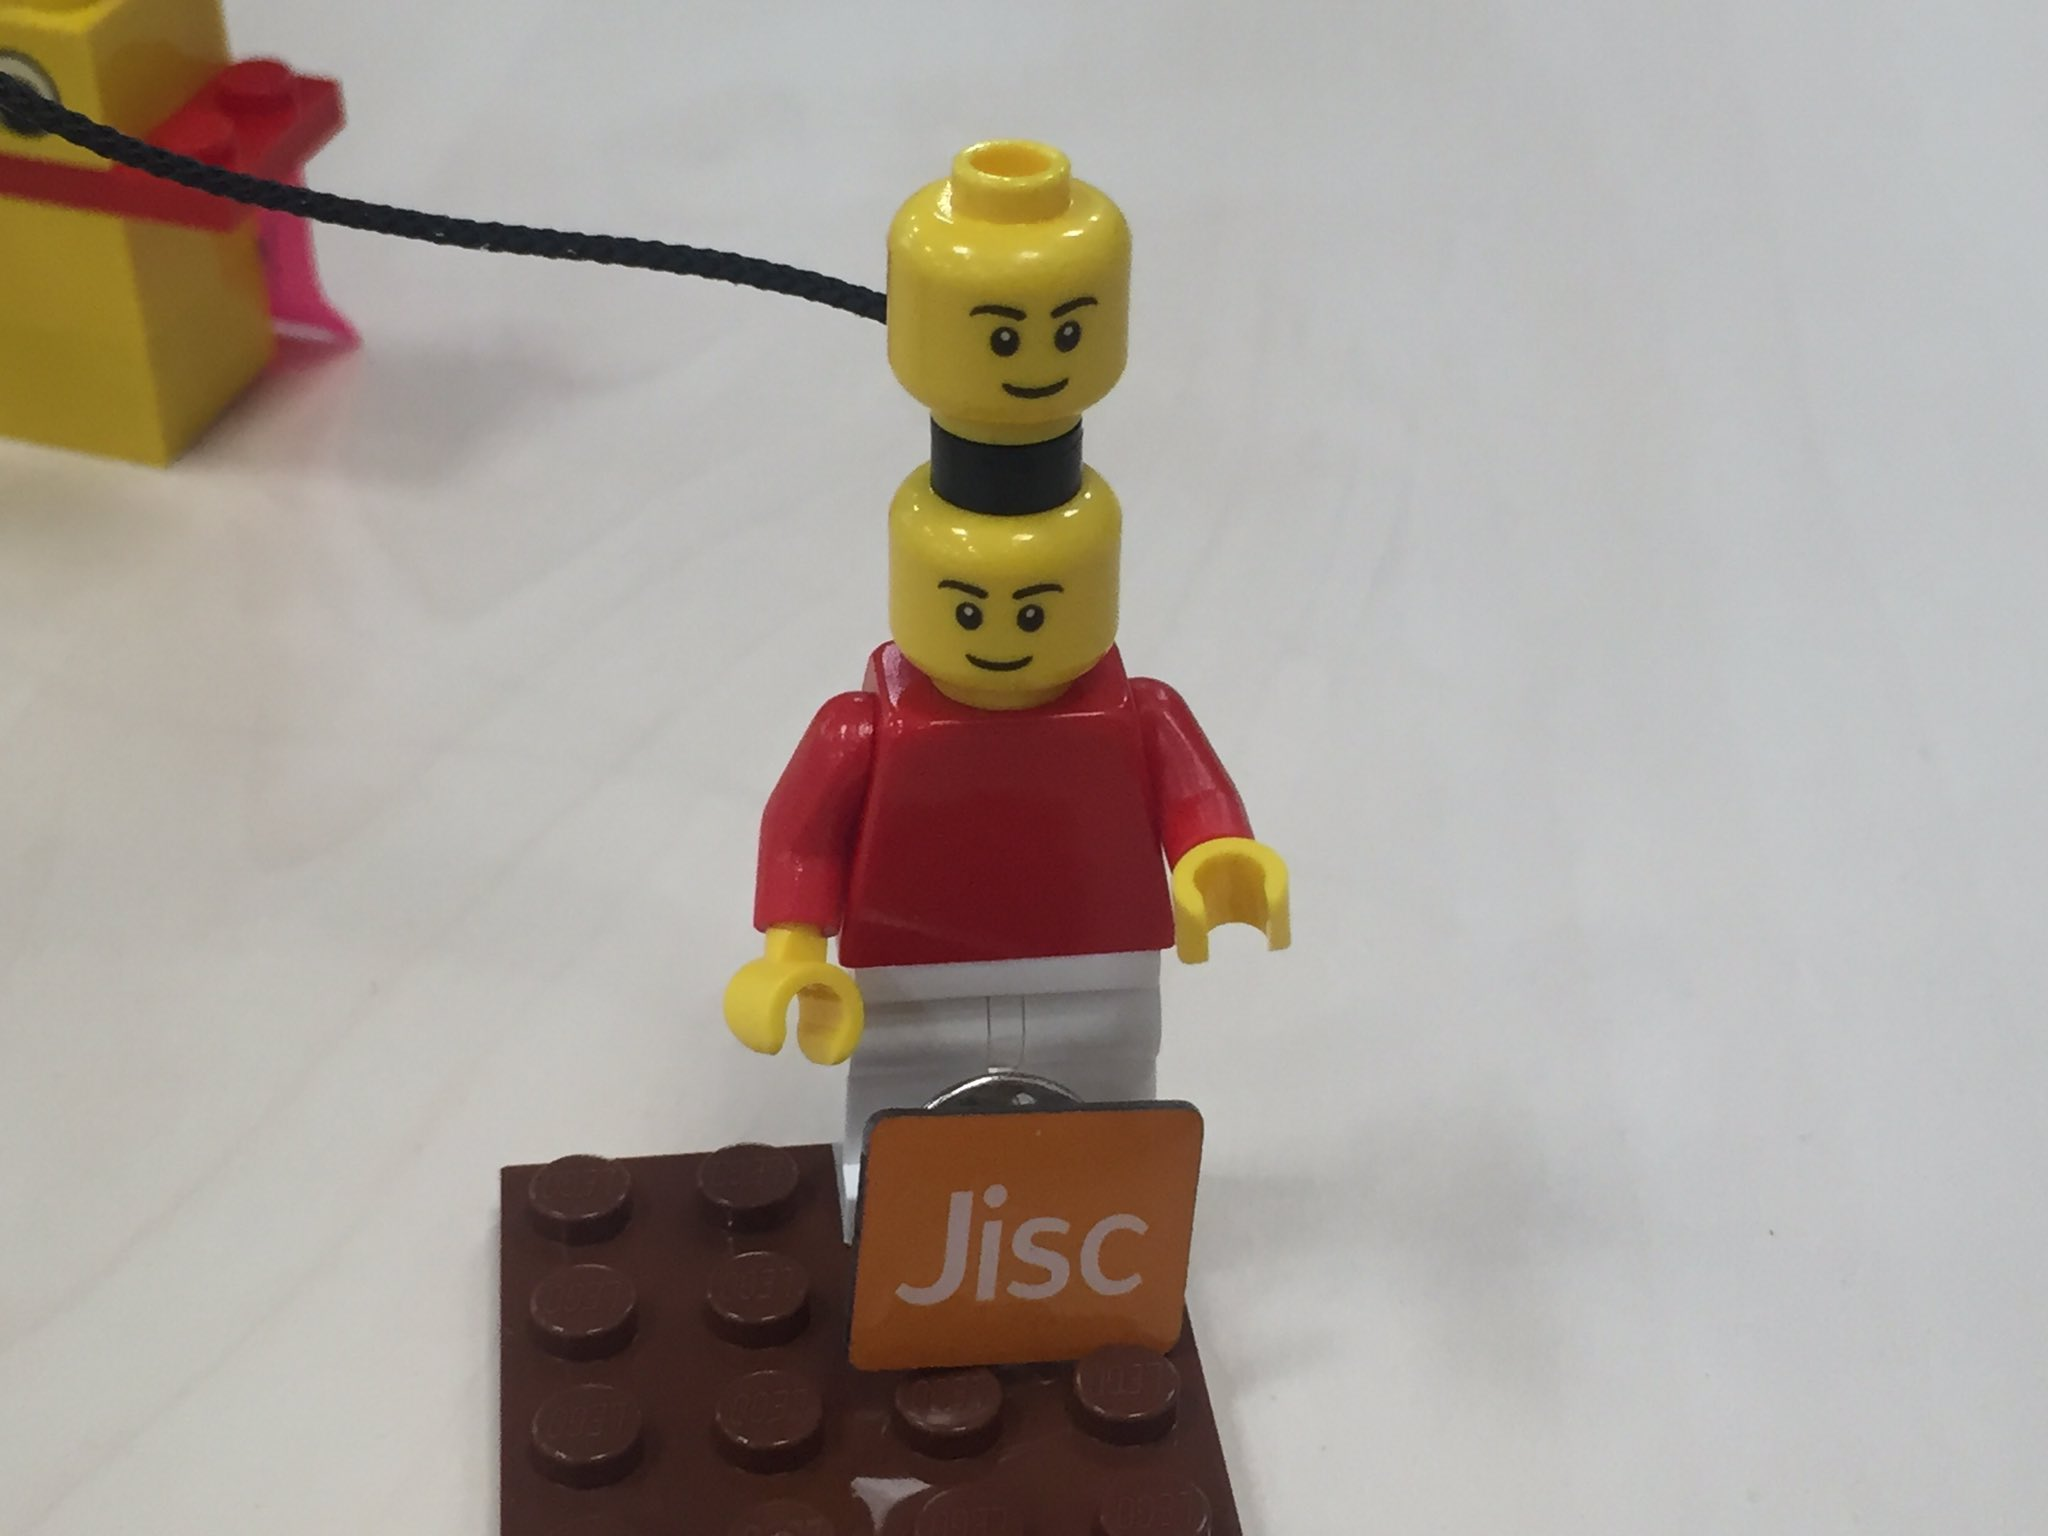 Mentoring is essential, because two heads are better than one! #studentideas @jisc SOSI https://t.co/qHsge1SPhh